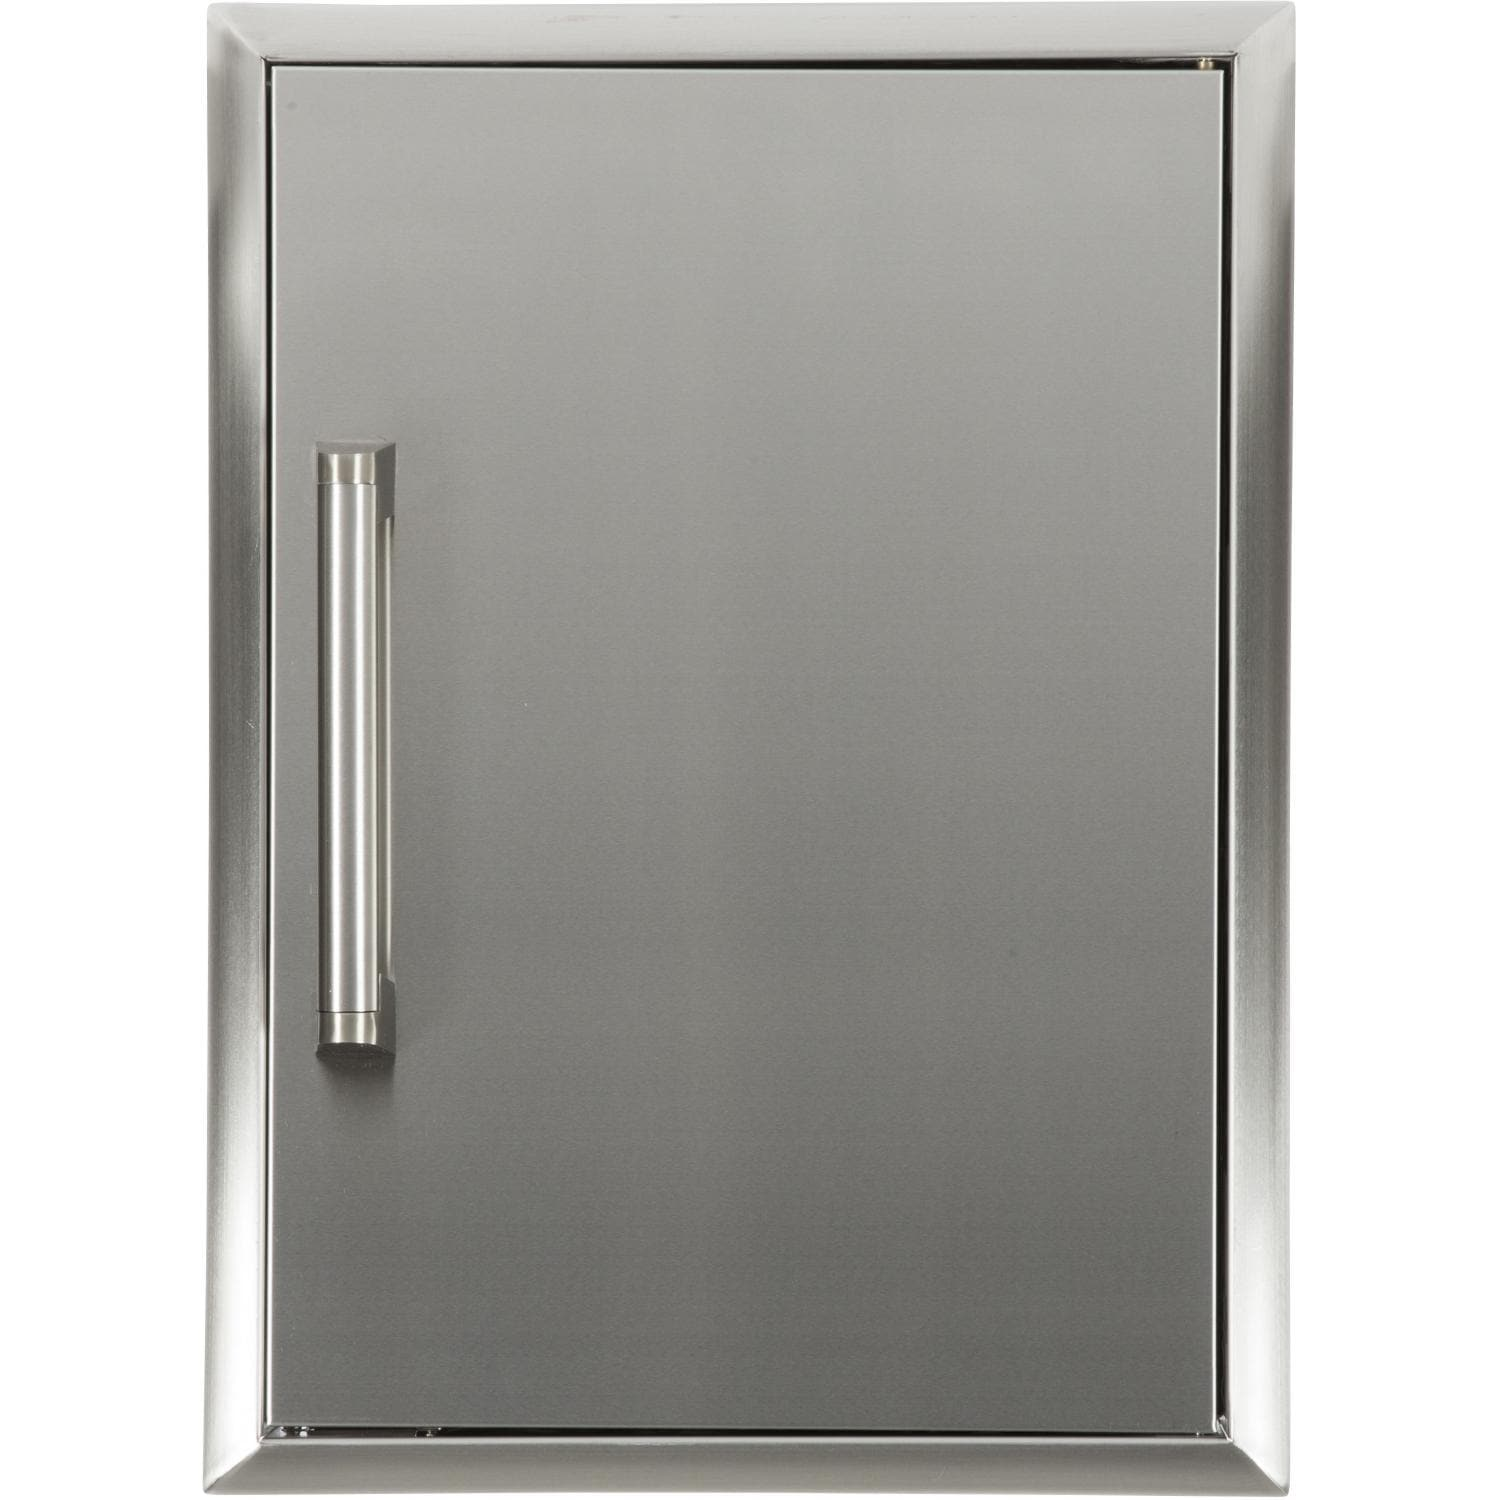 Coyote 16 inch single access door vertical csa2014 for Acces vertical